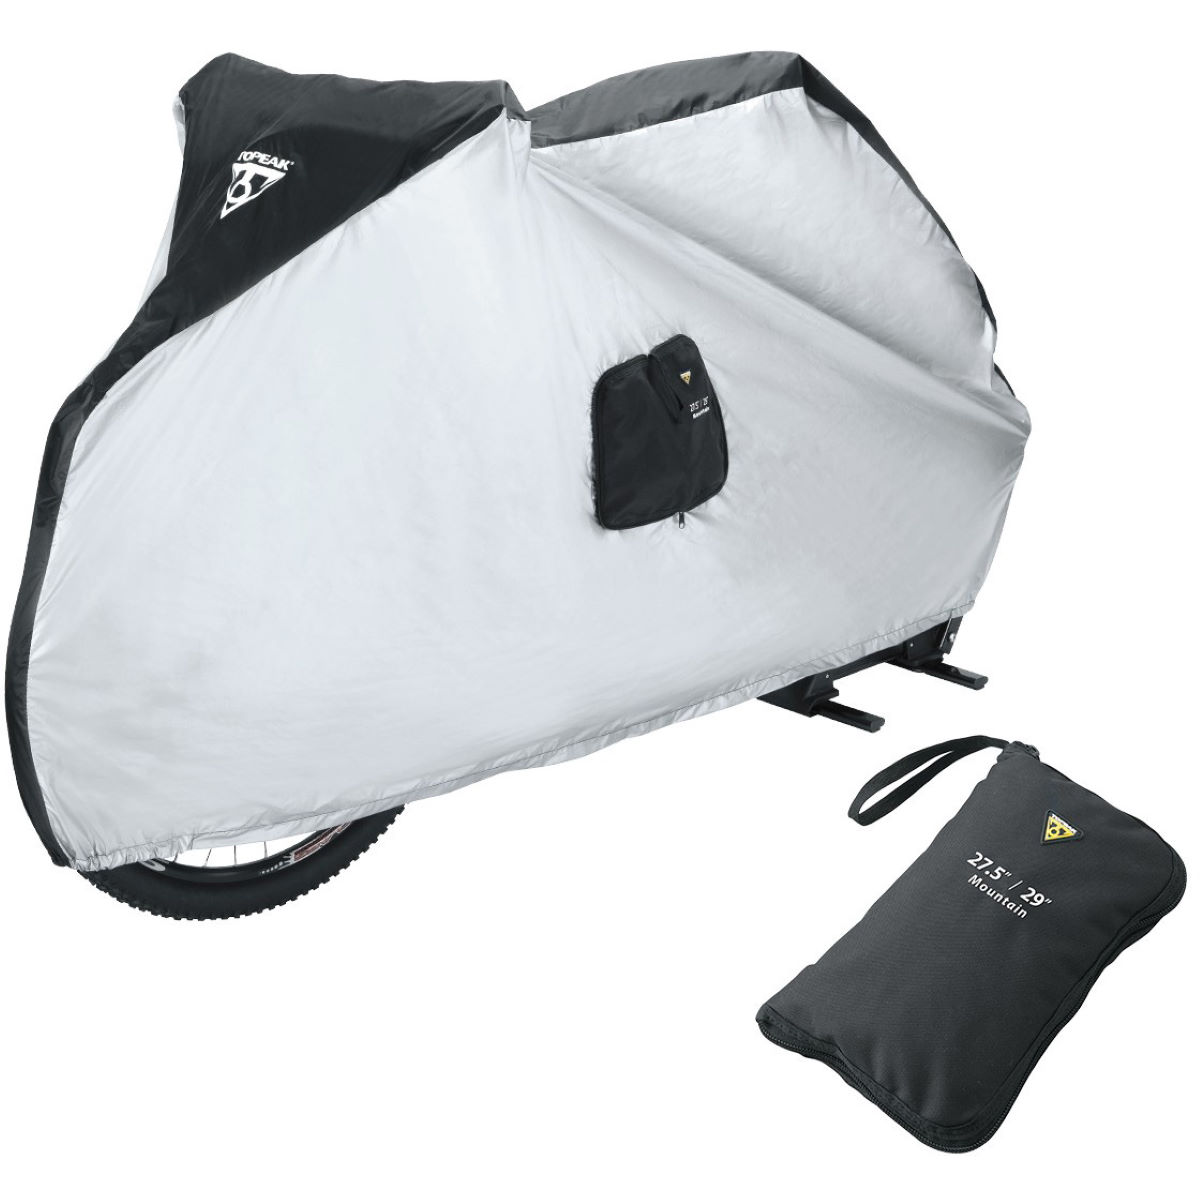 Topeak Topeak Bike Cover Nylon   Bike Bags